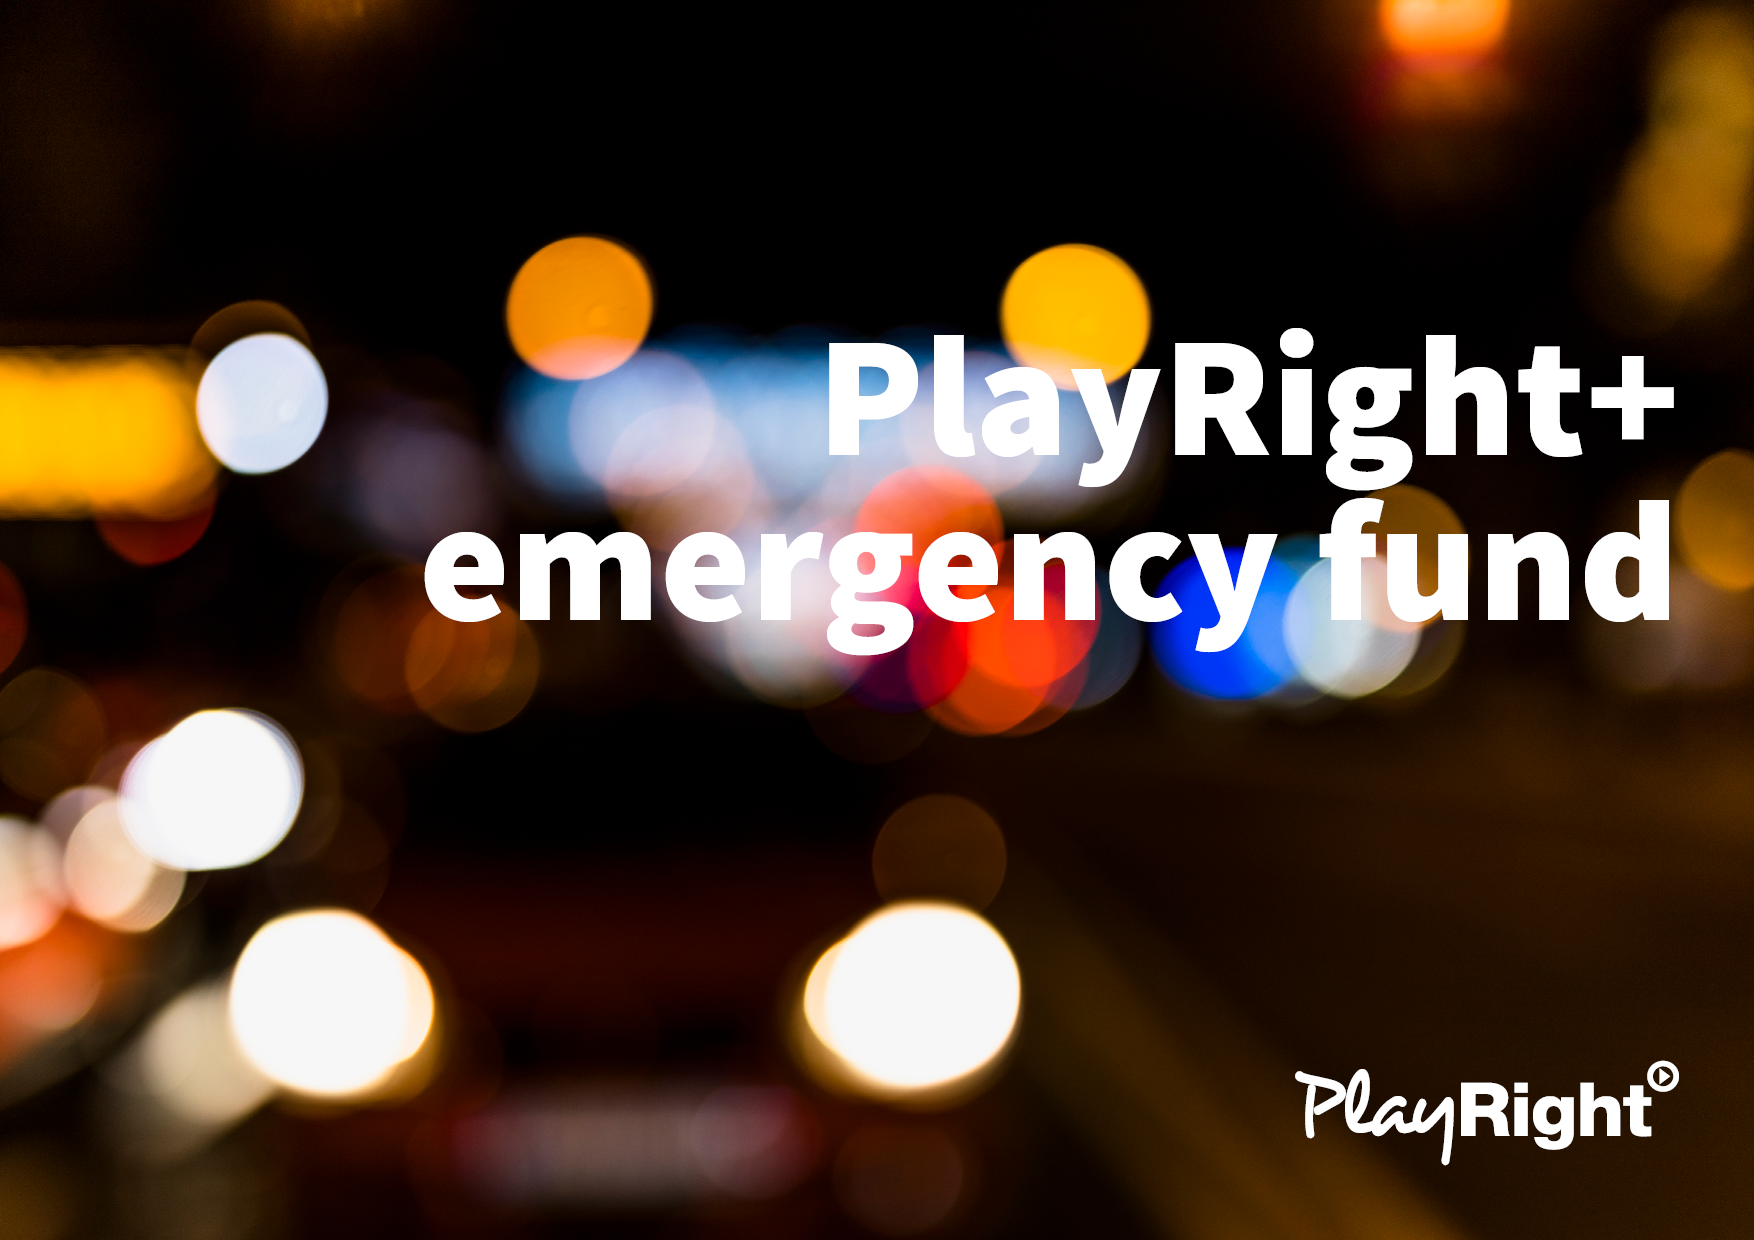 The PlayRight+ emergency fund is extended for October !